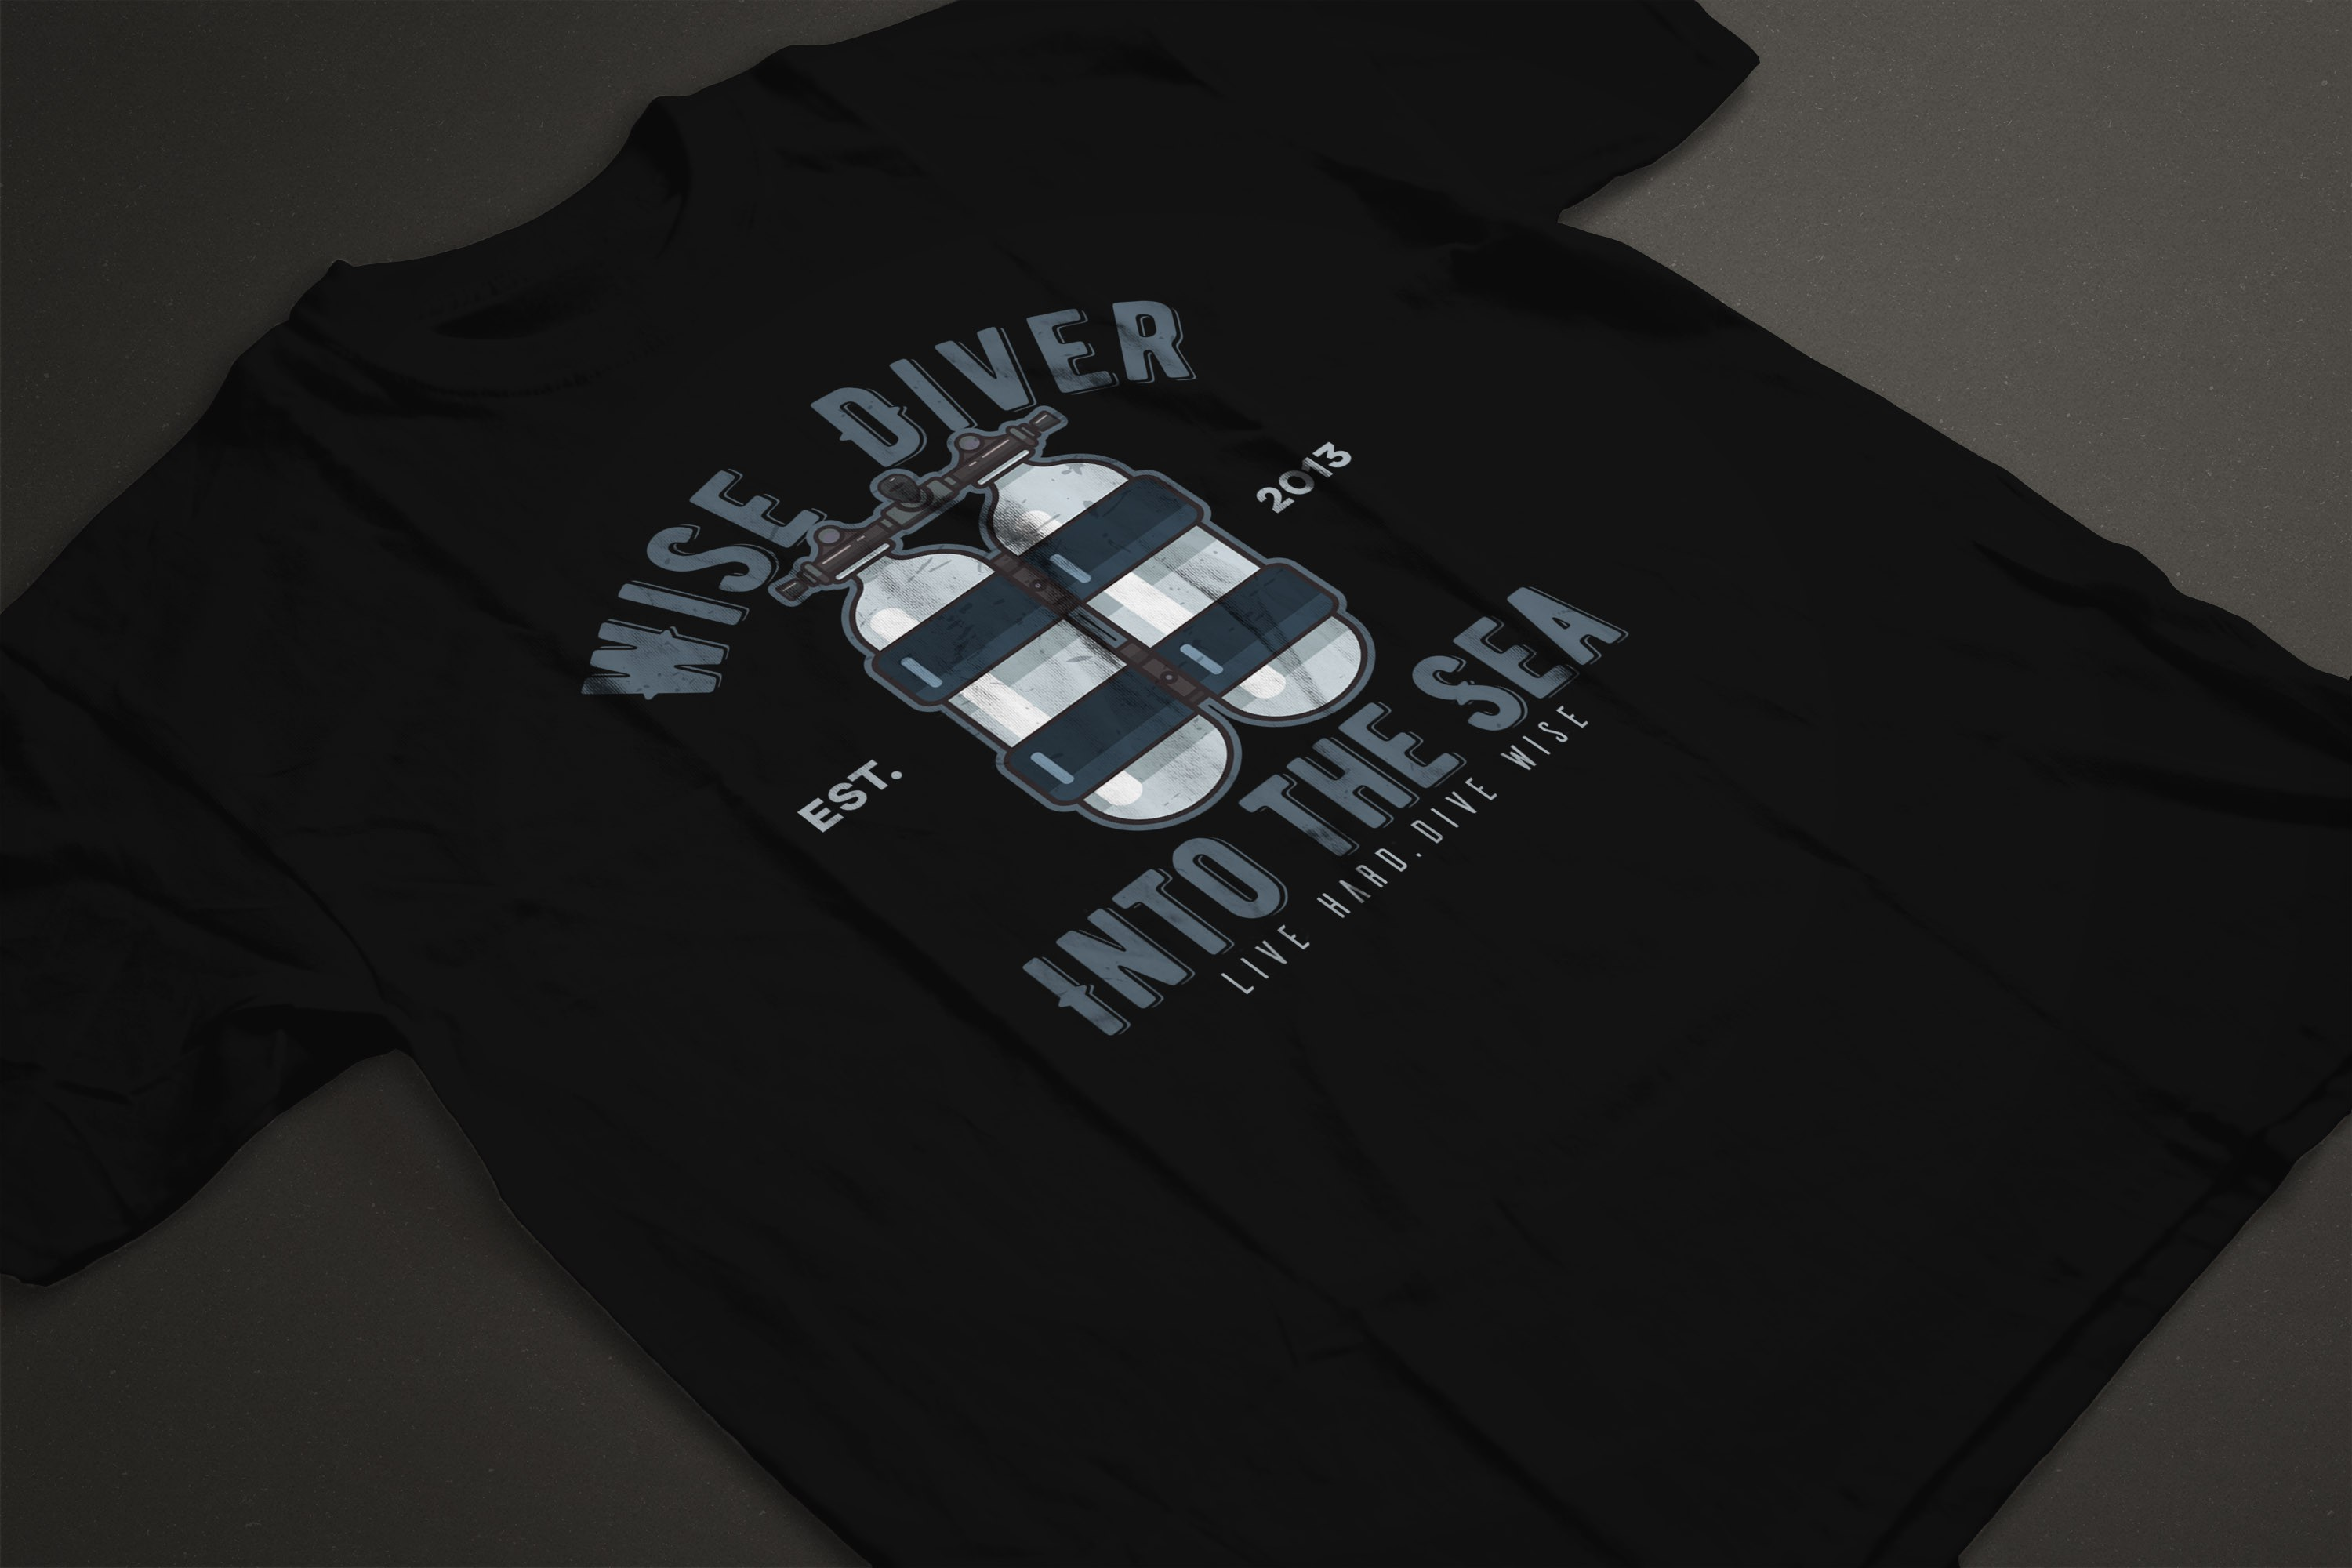 Modification to Diver T-shirt Illustration